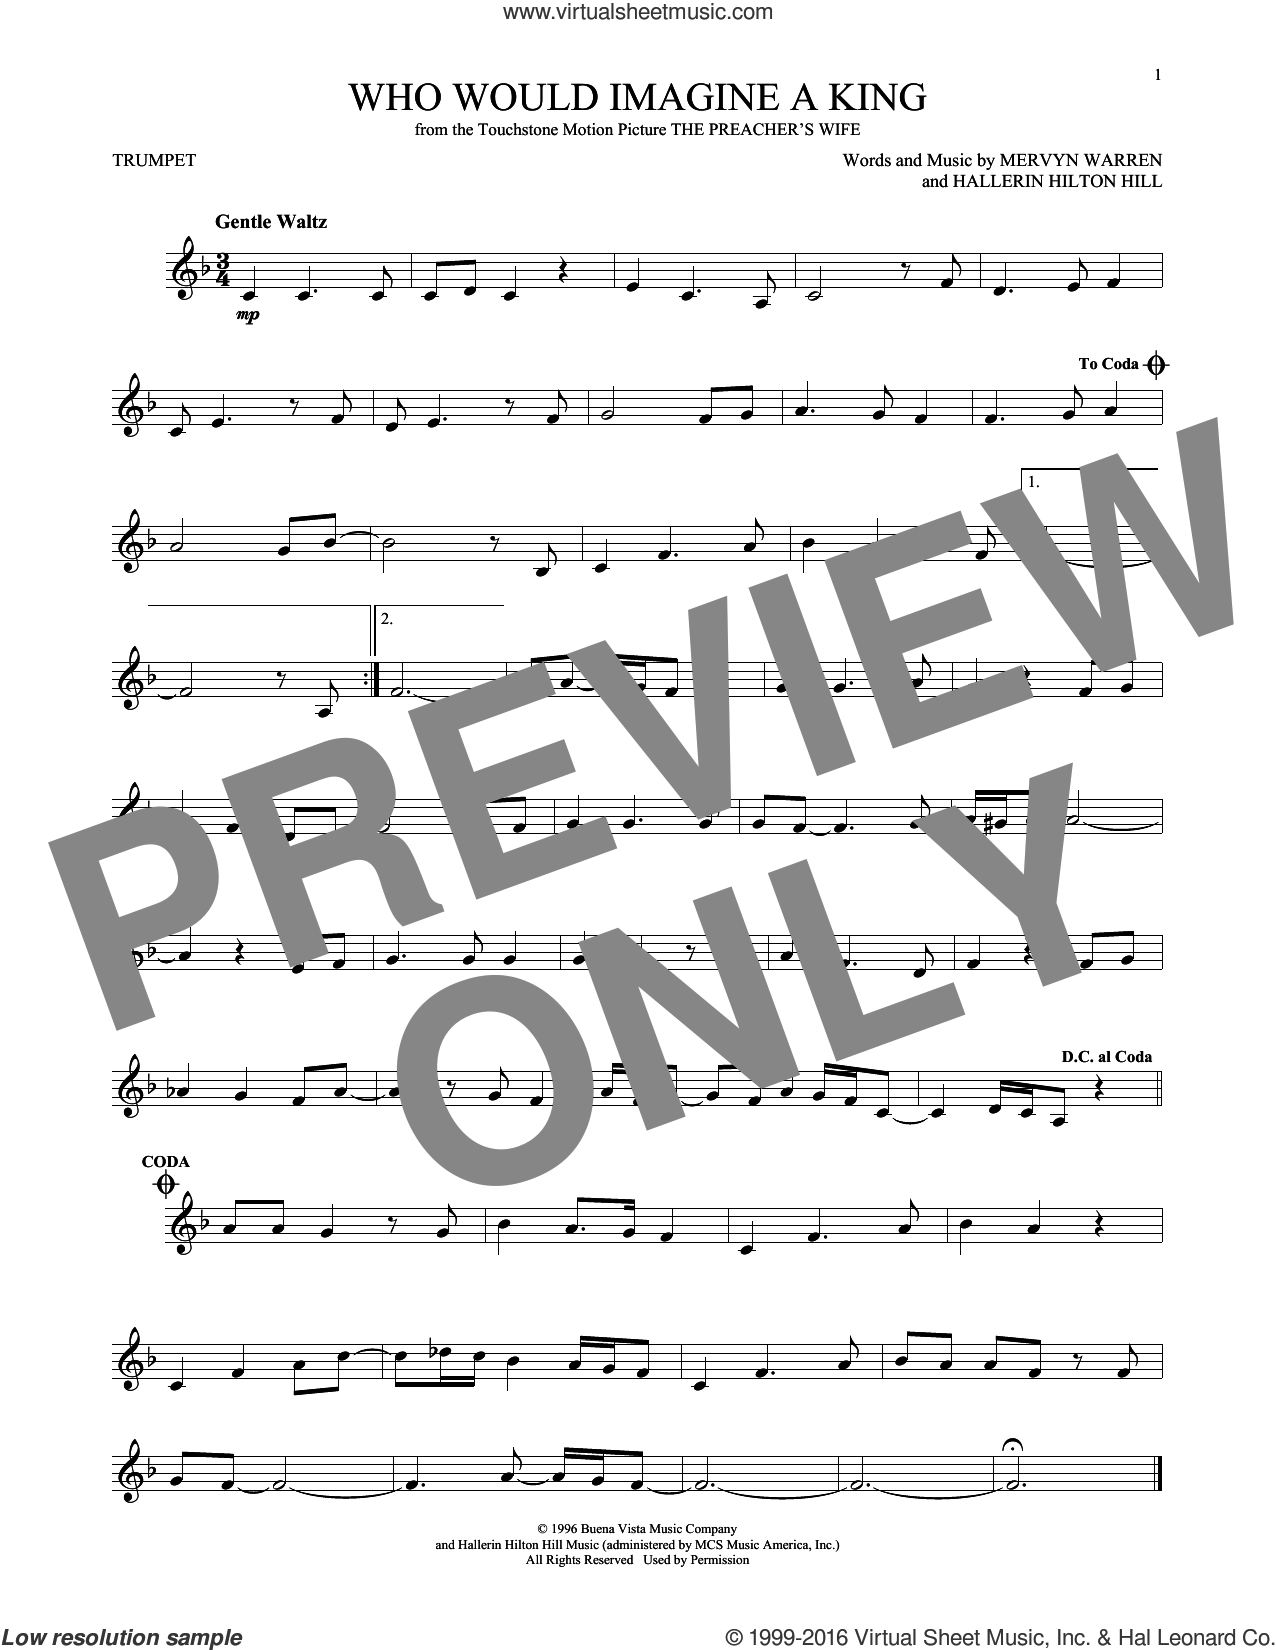 Who Would Imagine A King sheet music for trumpet solo by Whitney Houston, Hallerin Hilton Hill and Mervyn Warren, intermediate skill level